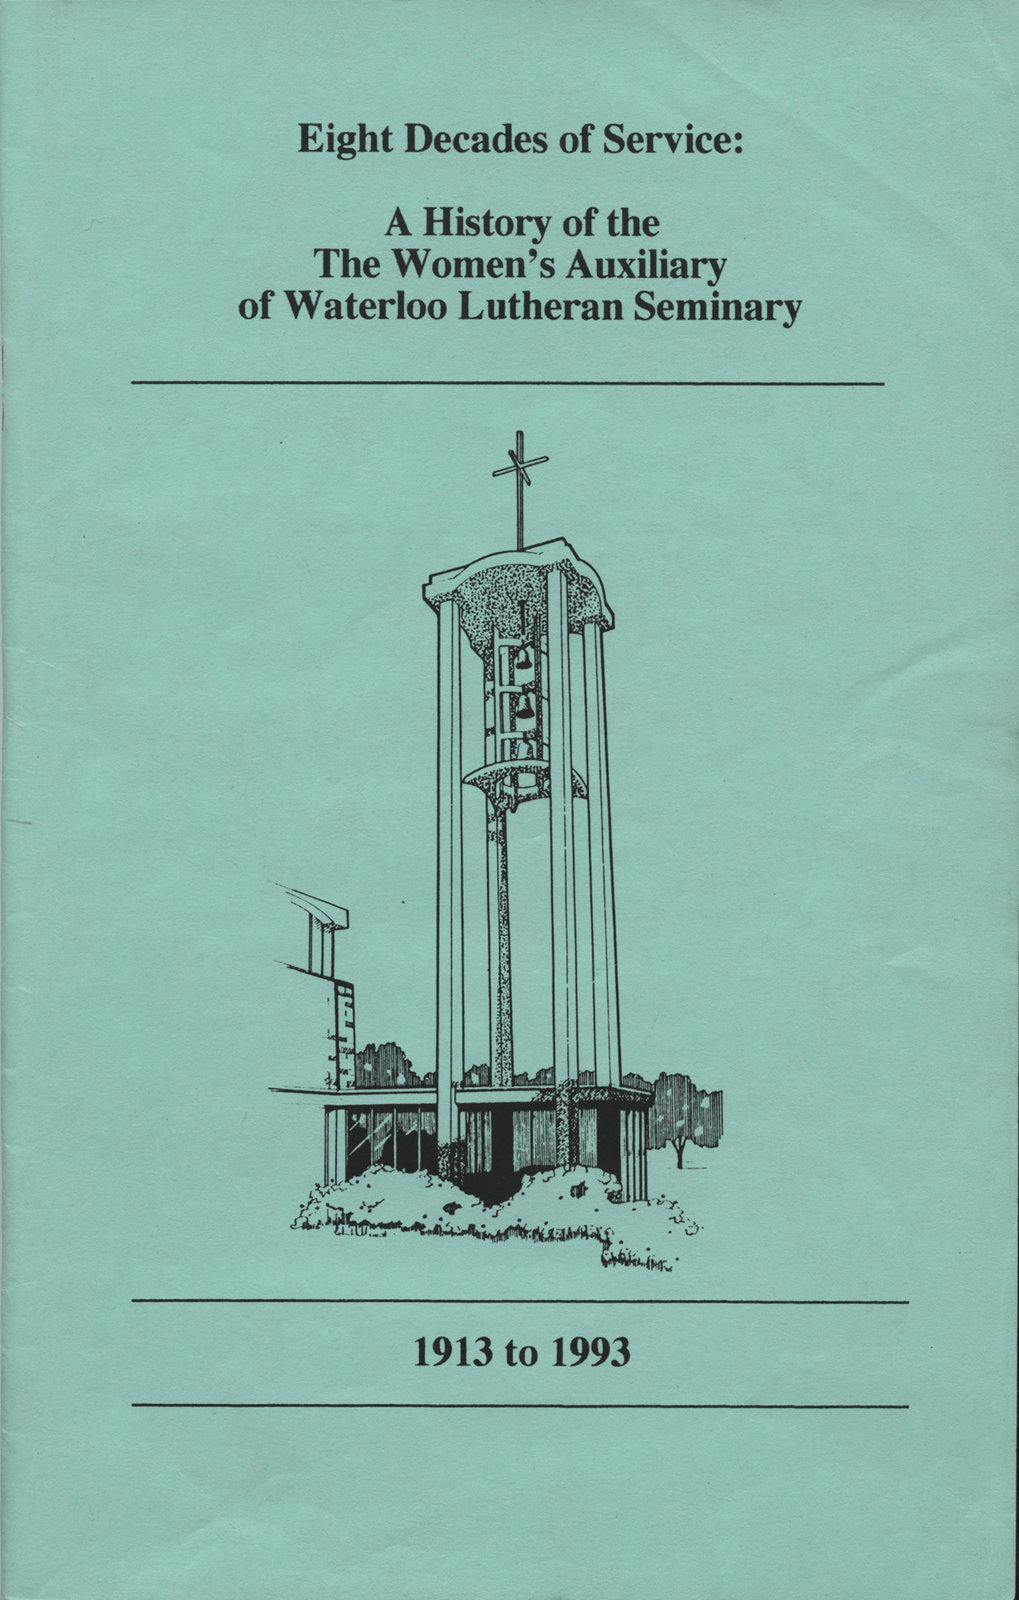 Eight decades of service : a history of the Women's Auxiliary of Waterloo Lutheran Seminary